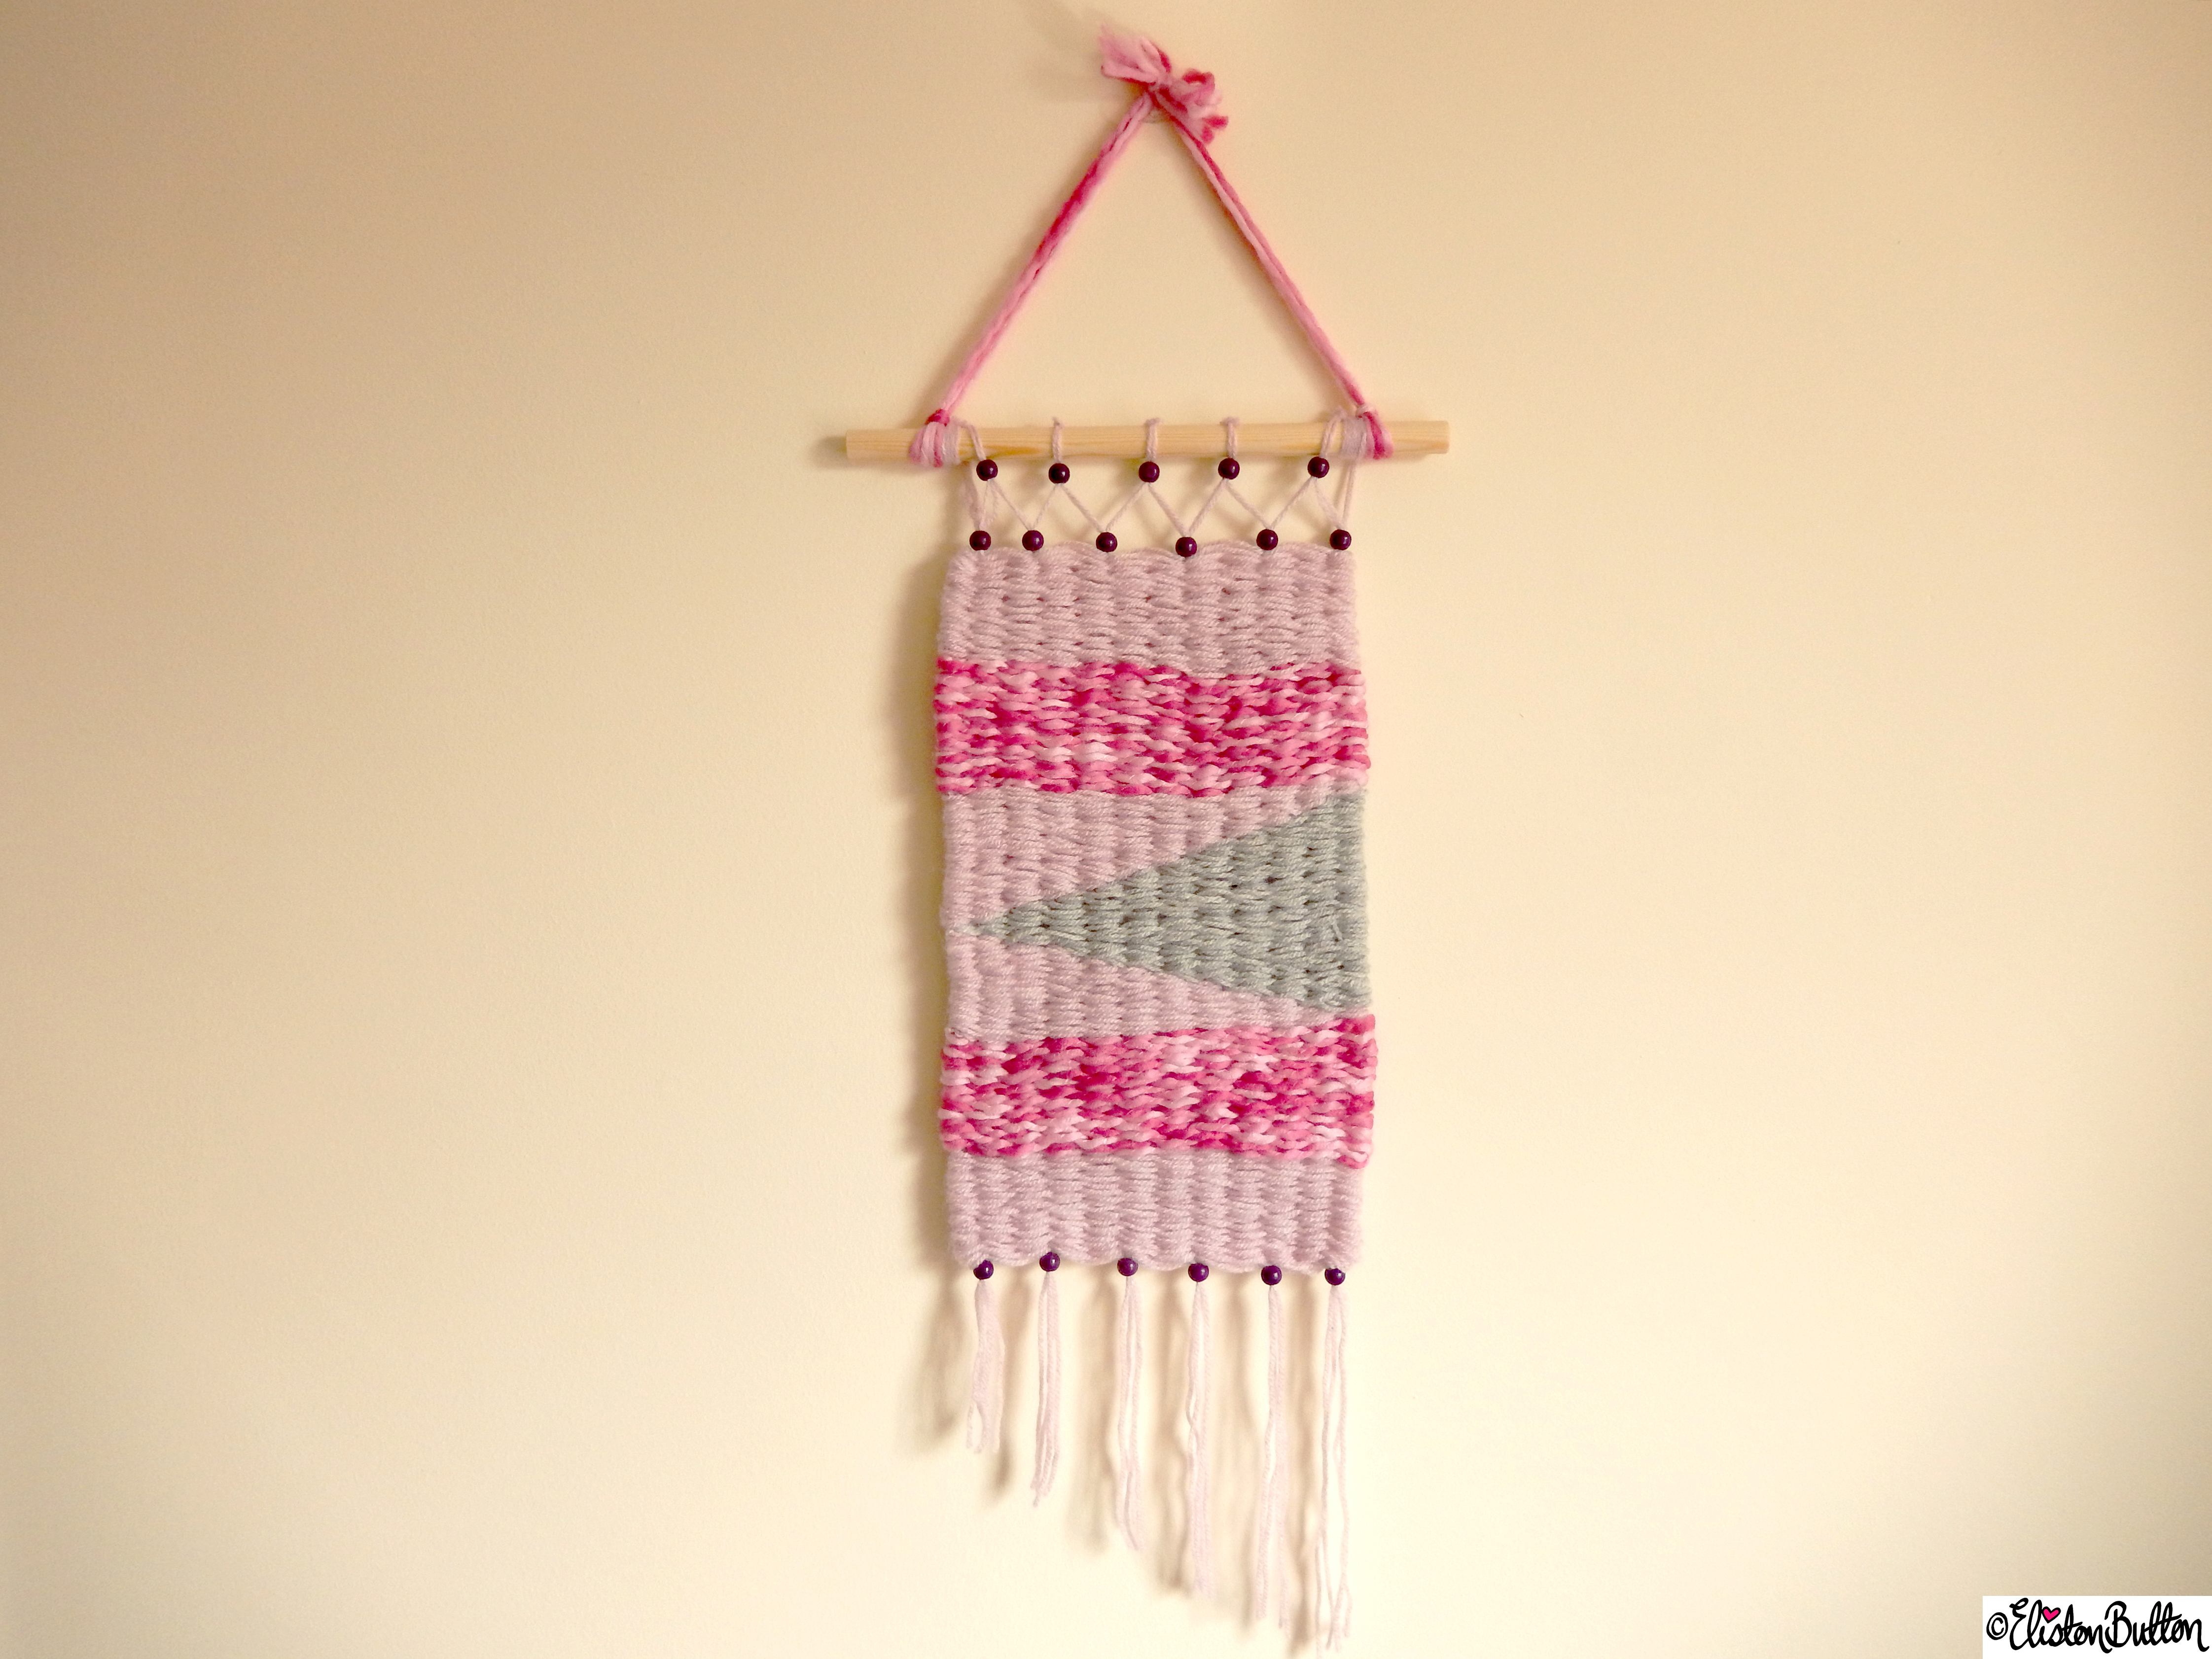 Pretty Pink and Dusky Grey Woven Wall Hanging - Create 28 - No. 7&8 - Woven Wall Hangings at www.elistonbutton.com - Eliston Button - That Crafty Kid – Art, Design, Craft & Adventure.